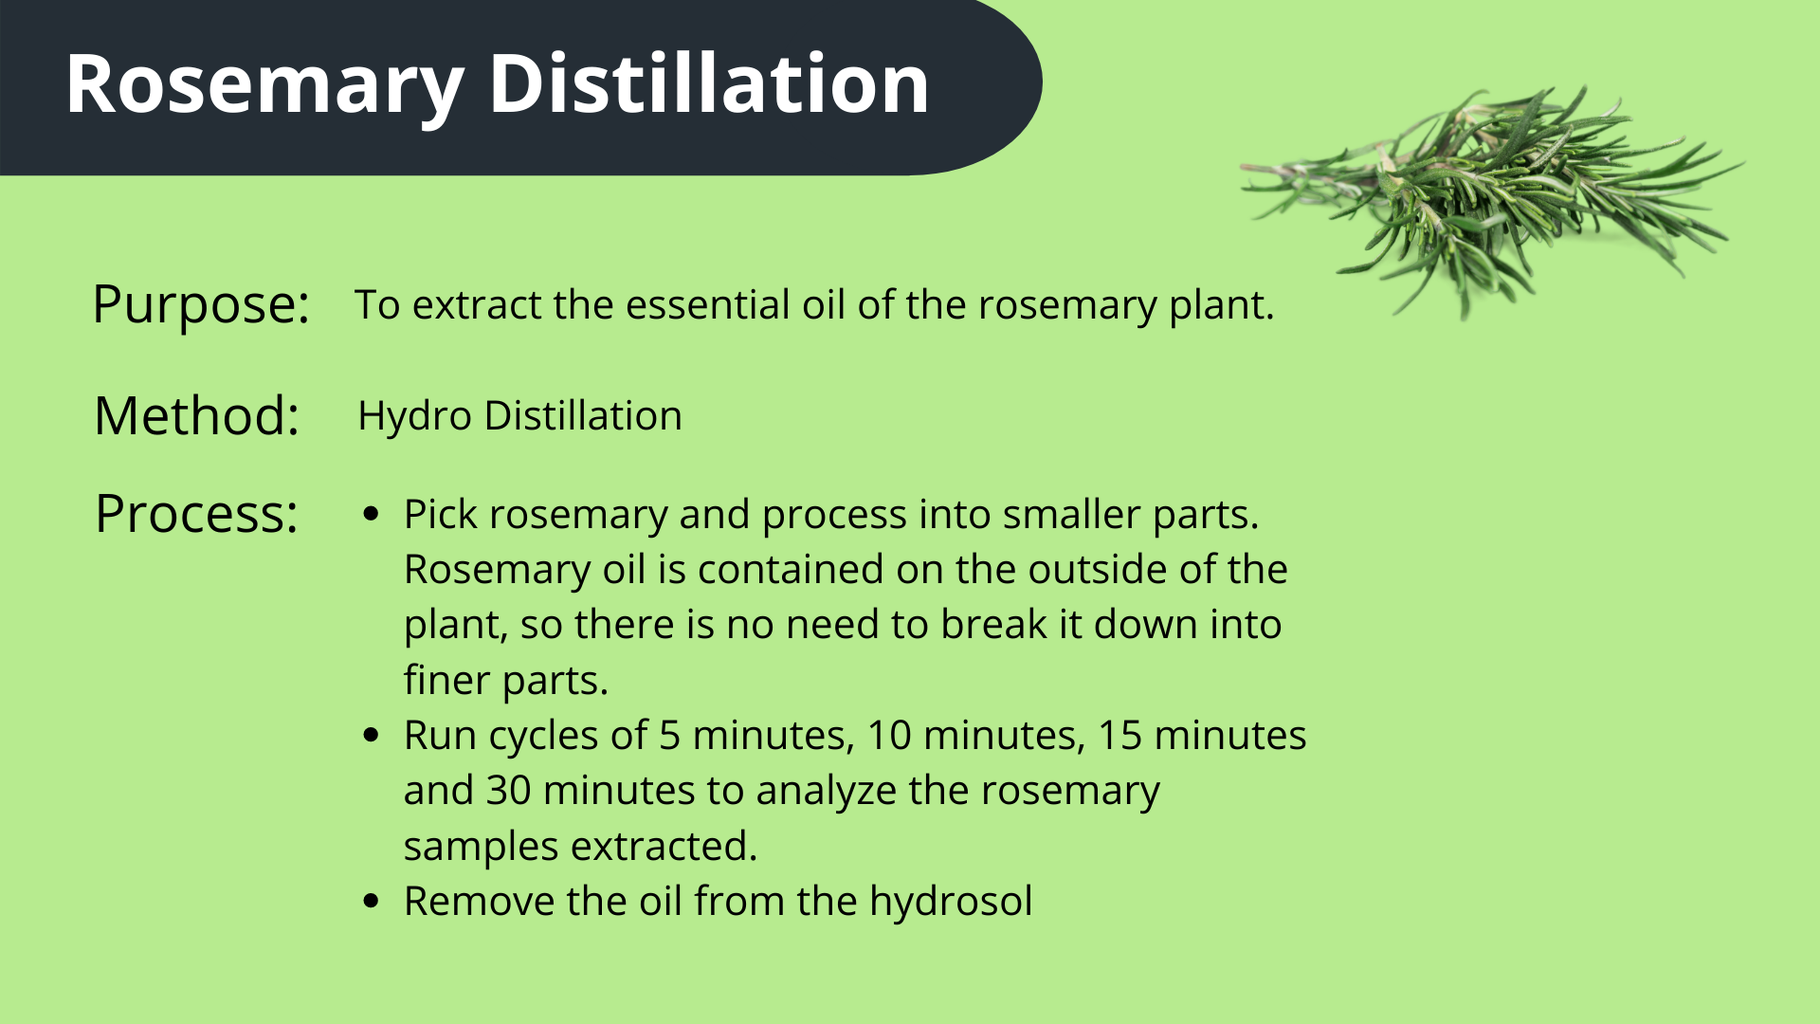 Extracting Rosemary With Hydro-Distillation